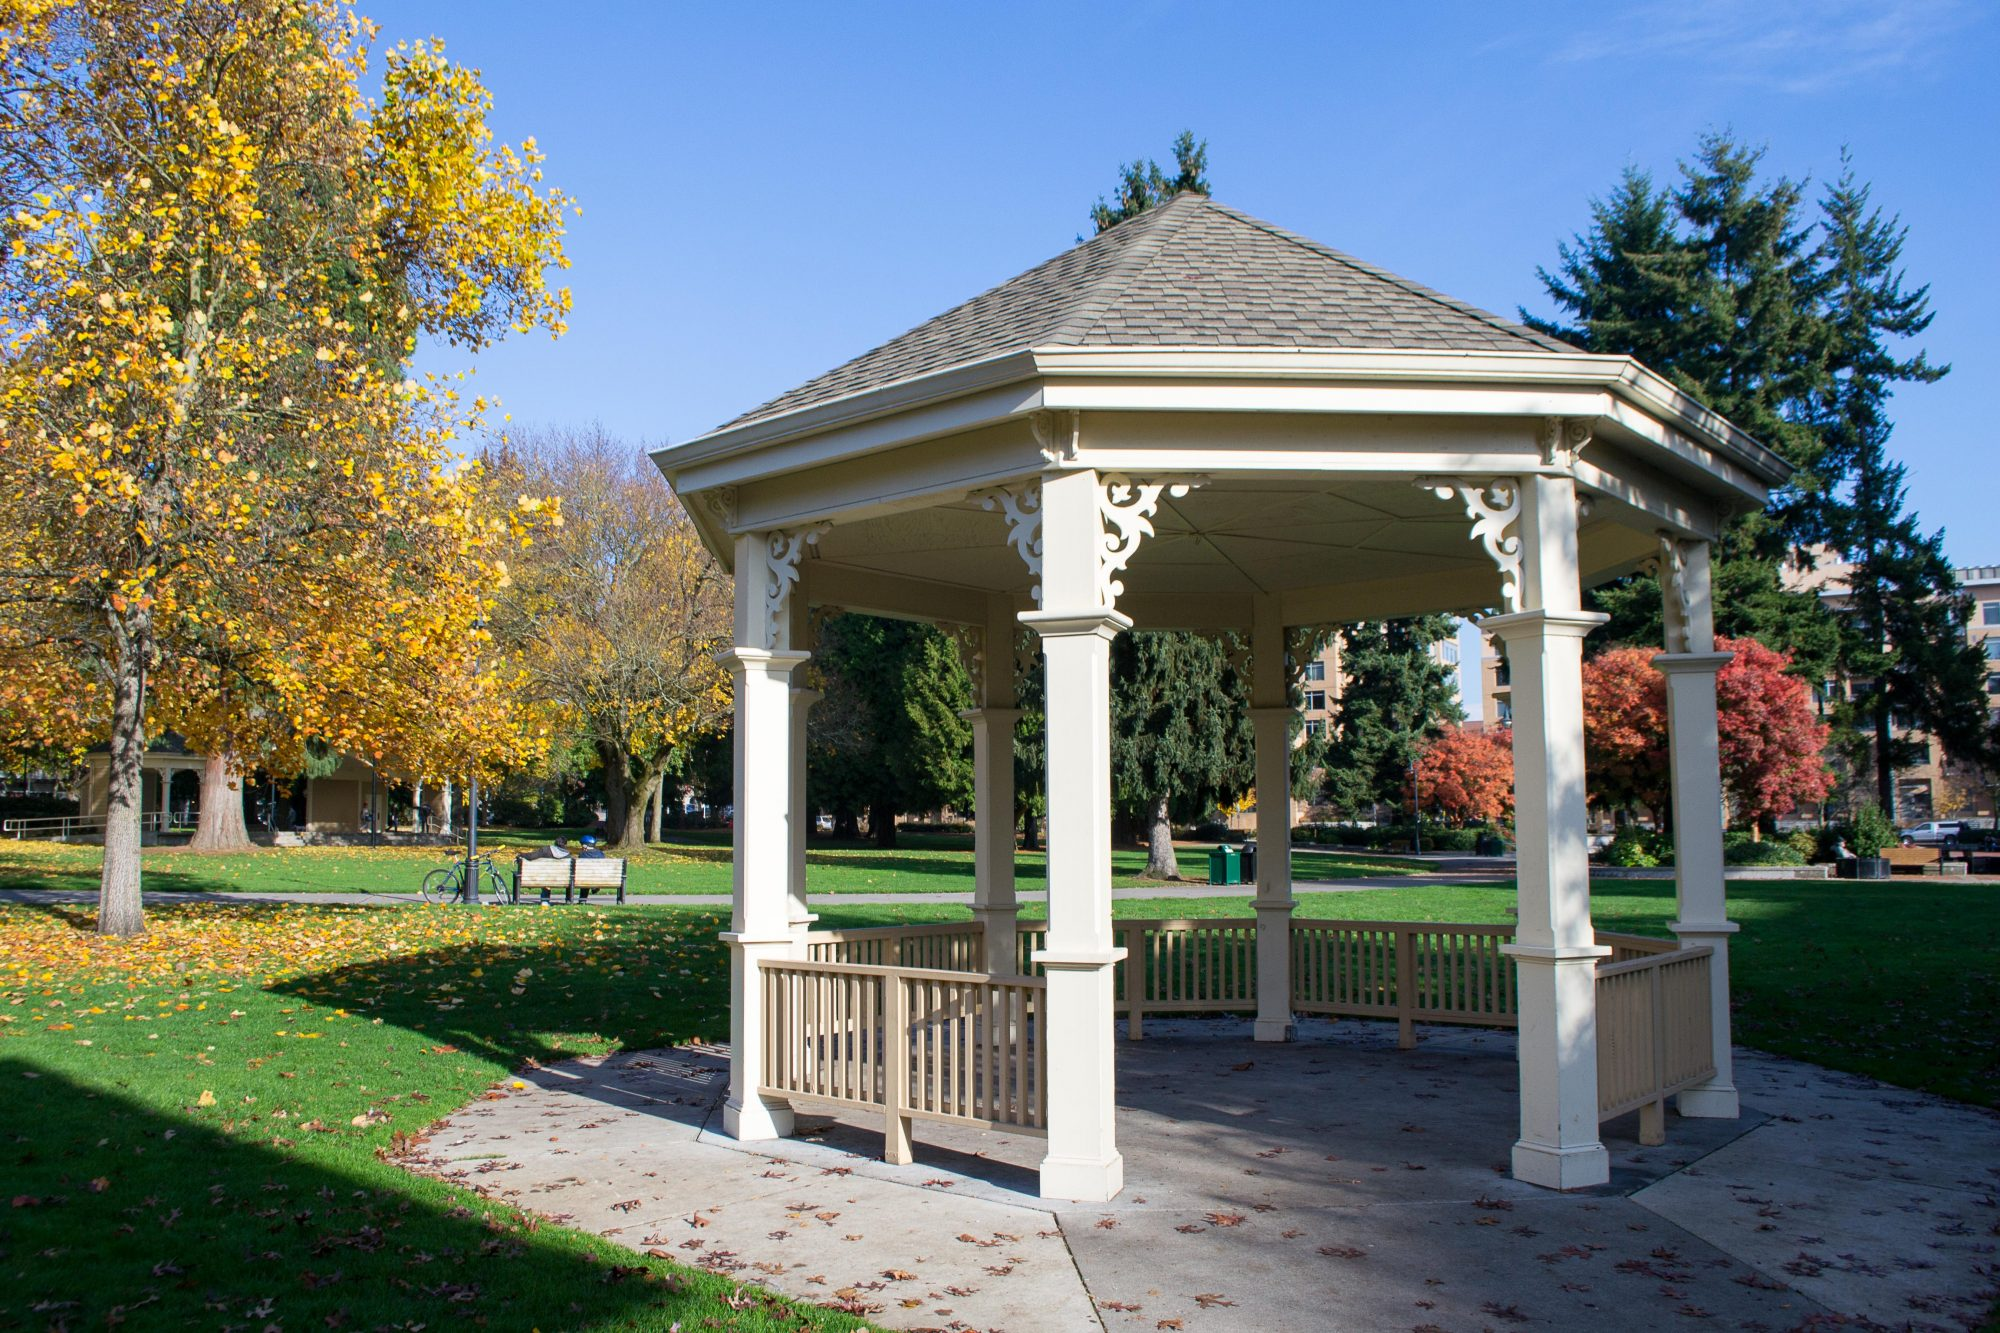 Esther Short Park